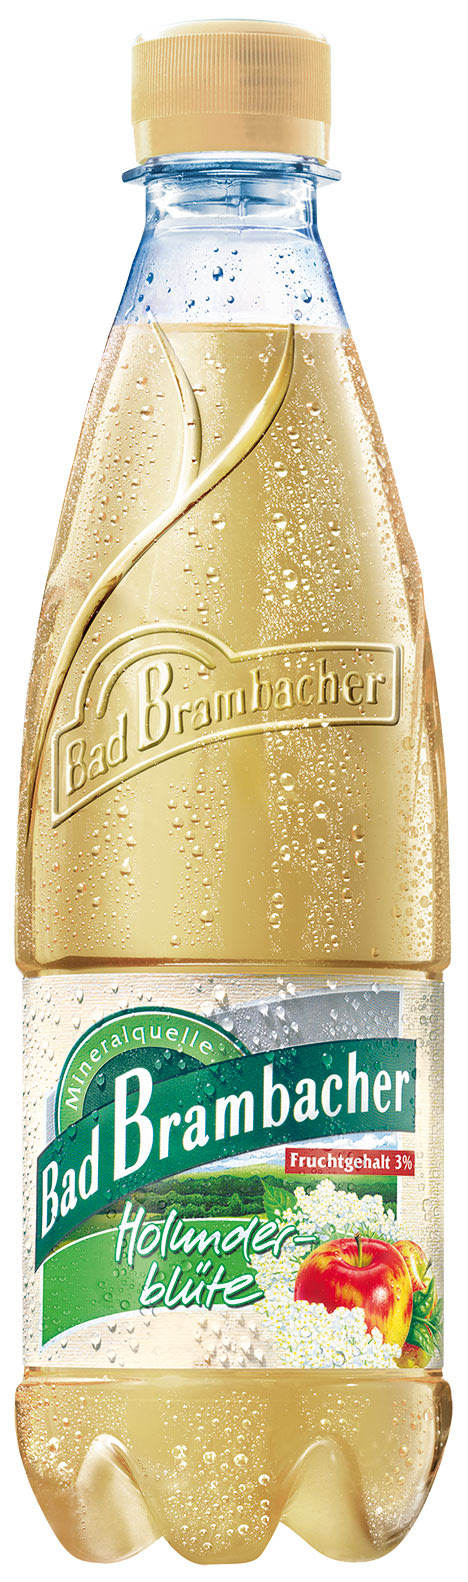 Bad Brambacher Holunderblüte 1 l PET Einweg